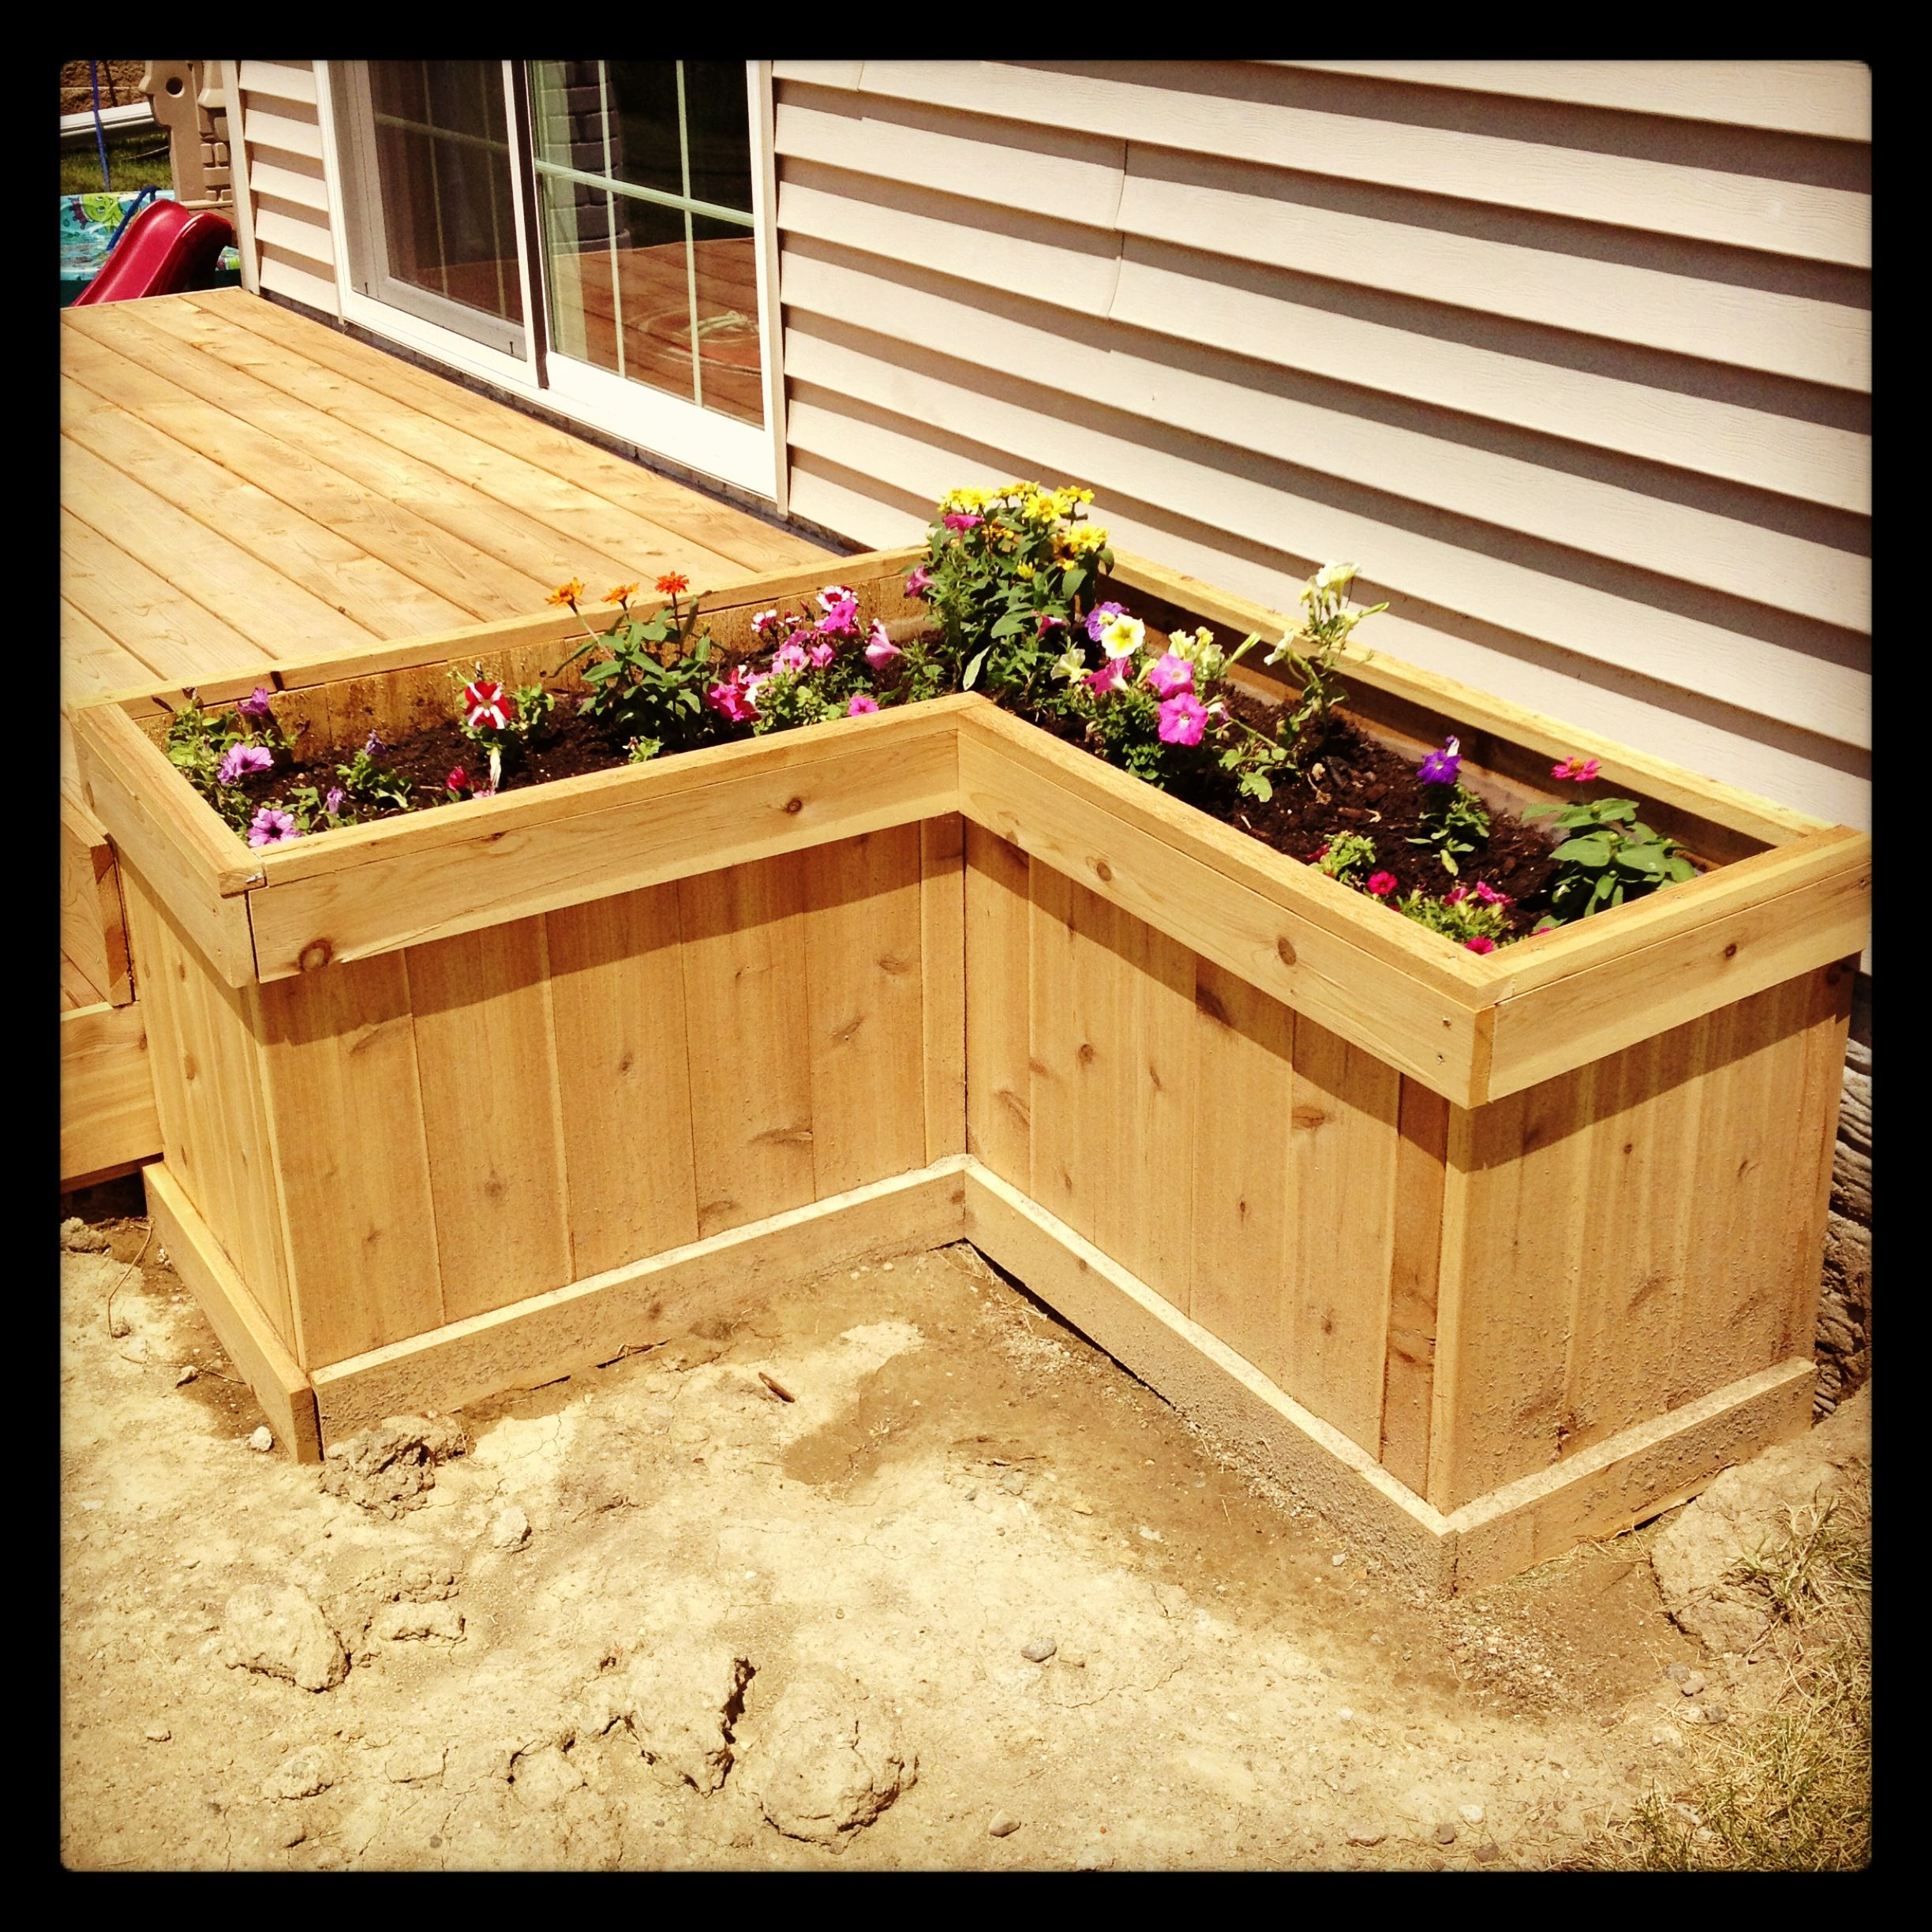 32 Best Deck Rail Planters Images On Pinterest: Outdoors And Gardening